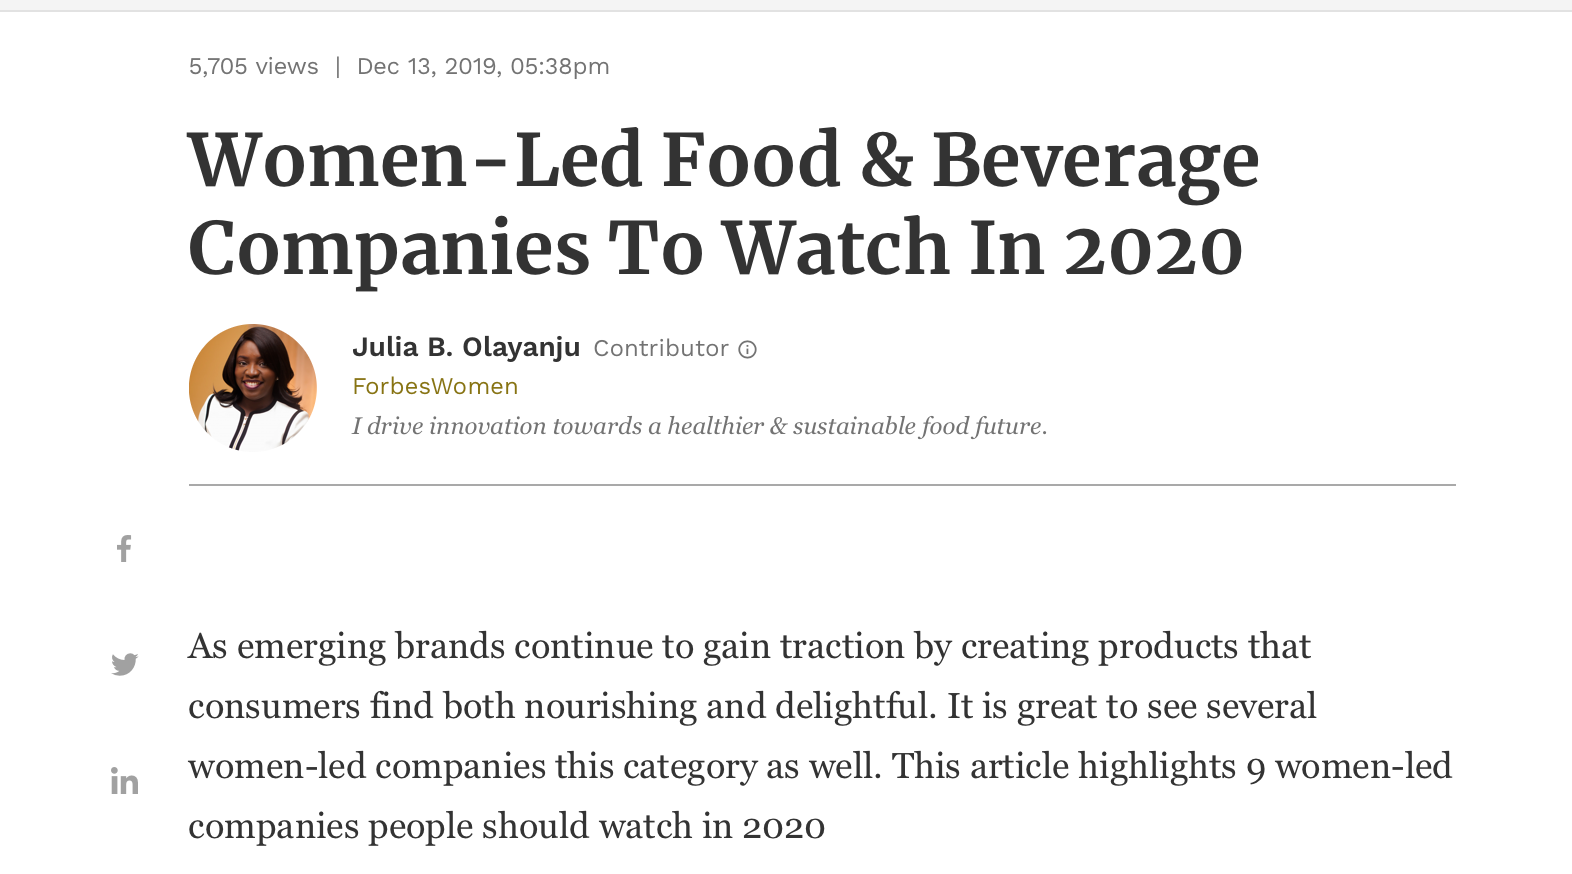 forbes women founded companies to watch 2020 kara landau uplift food